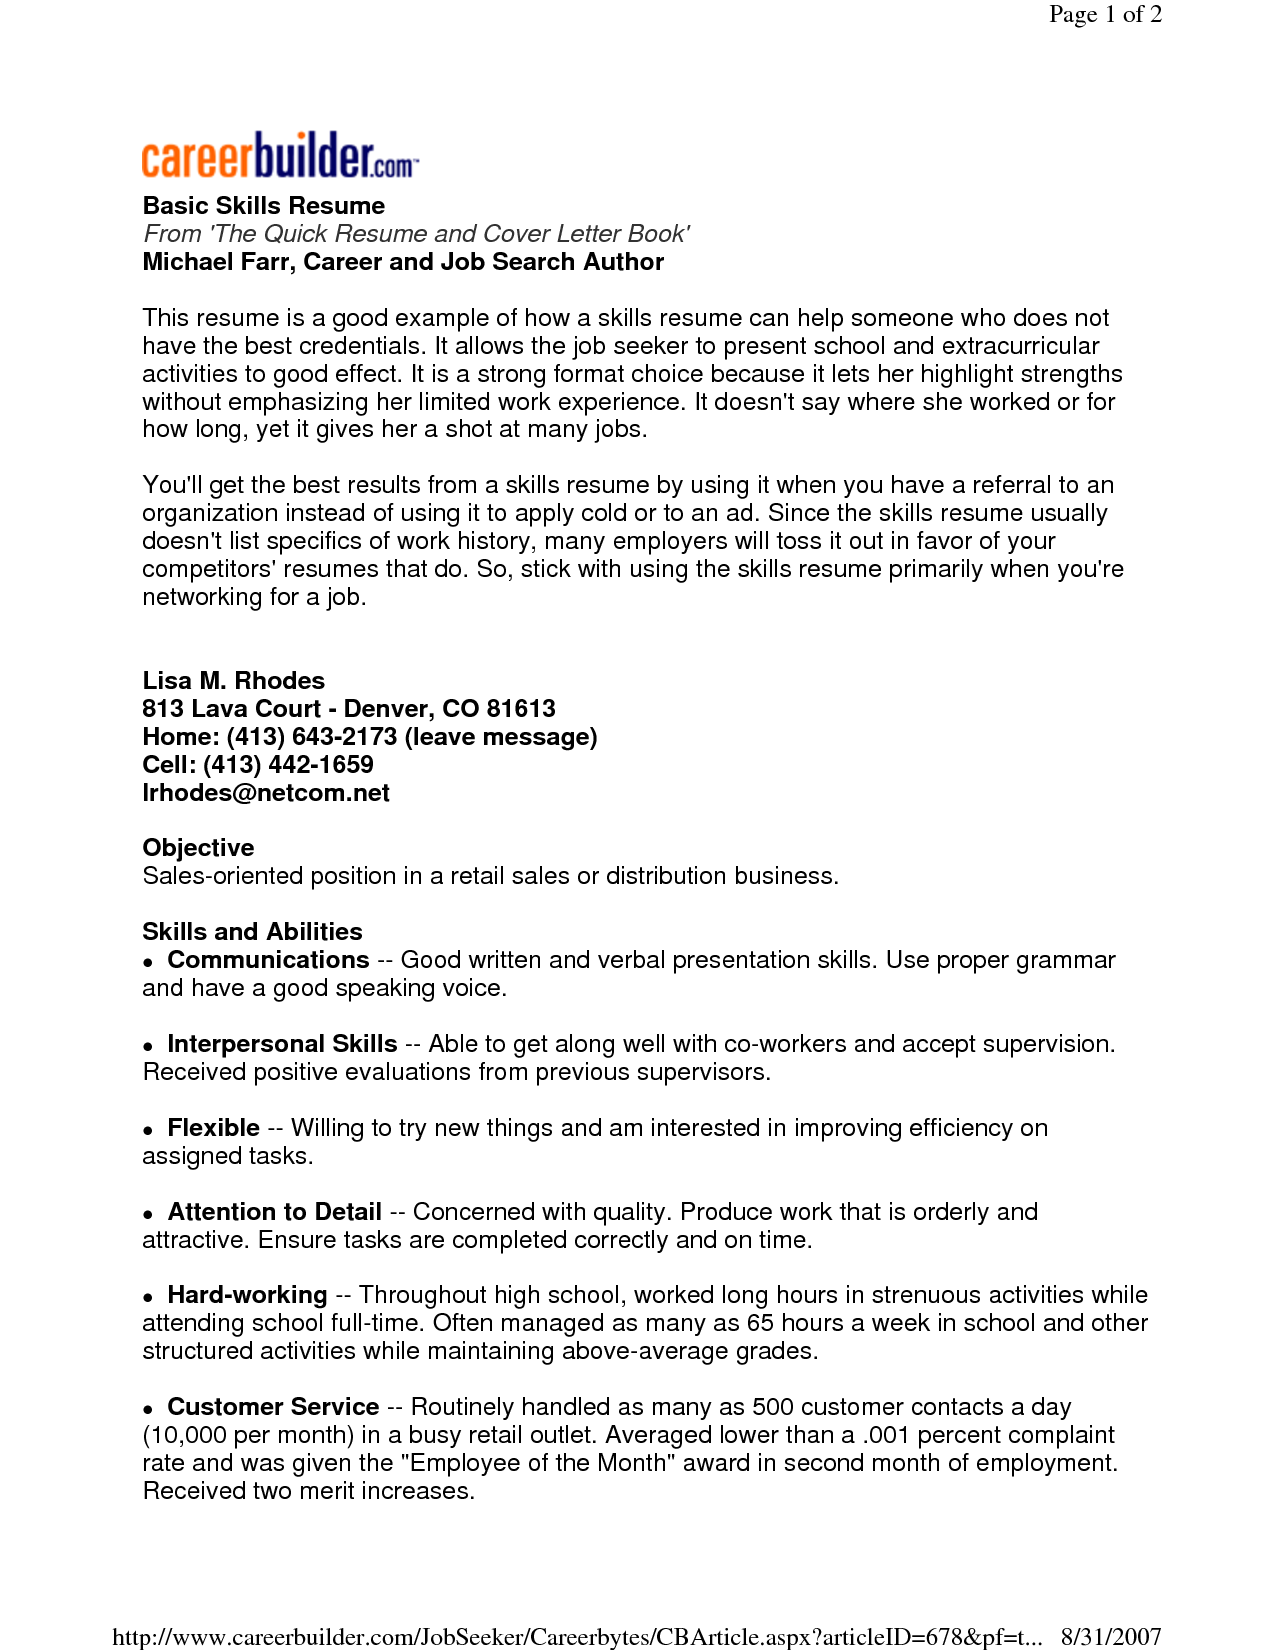 Areas Of Expertise Resume Examples Pleasing Basic Resume Examples Skills  Httpwww.resumecareerbasic .